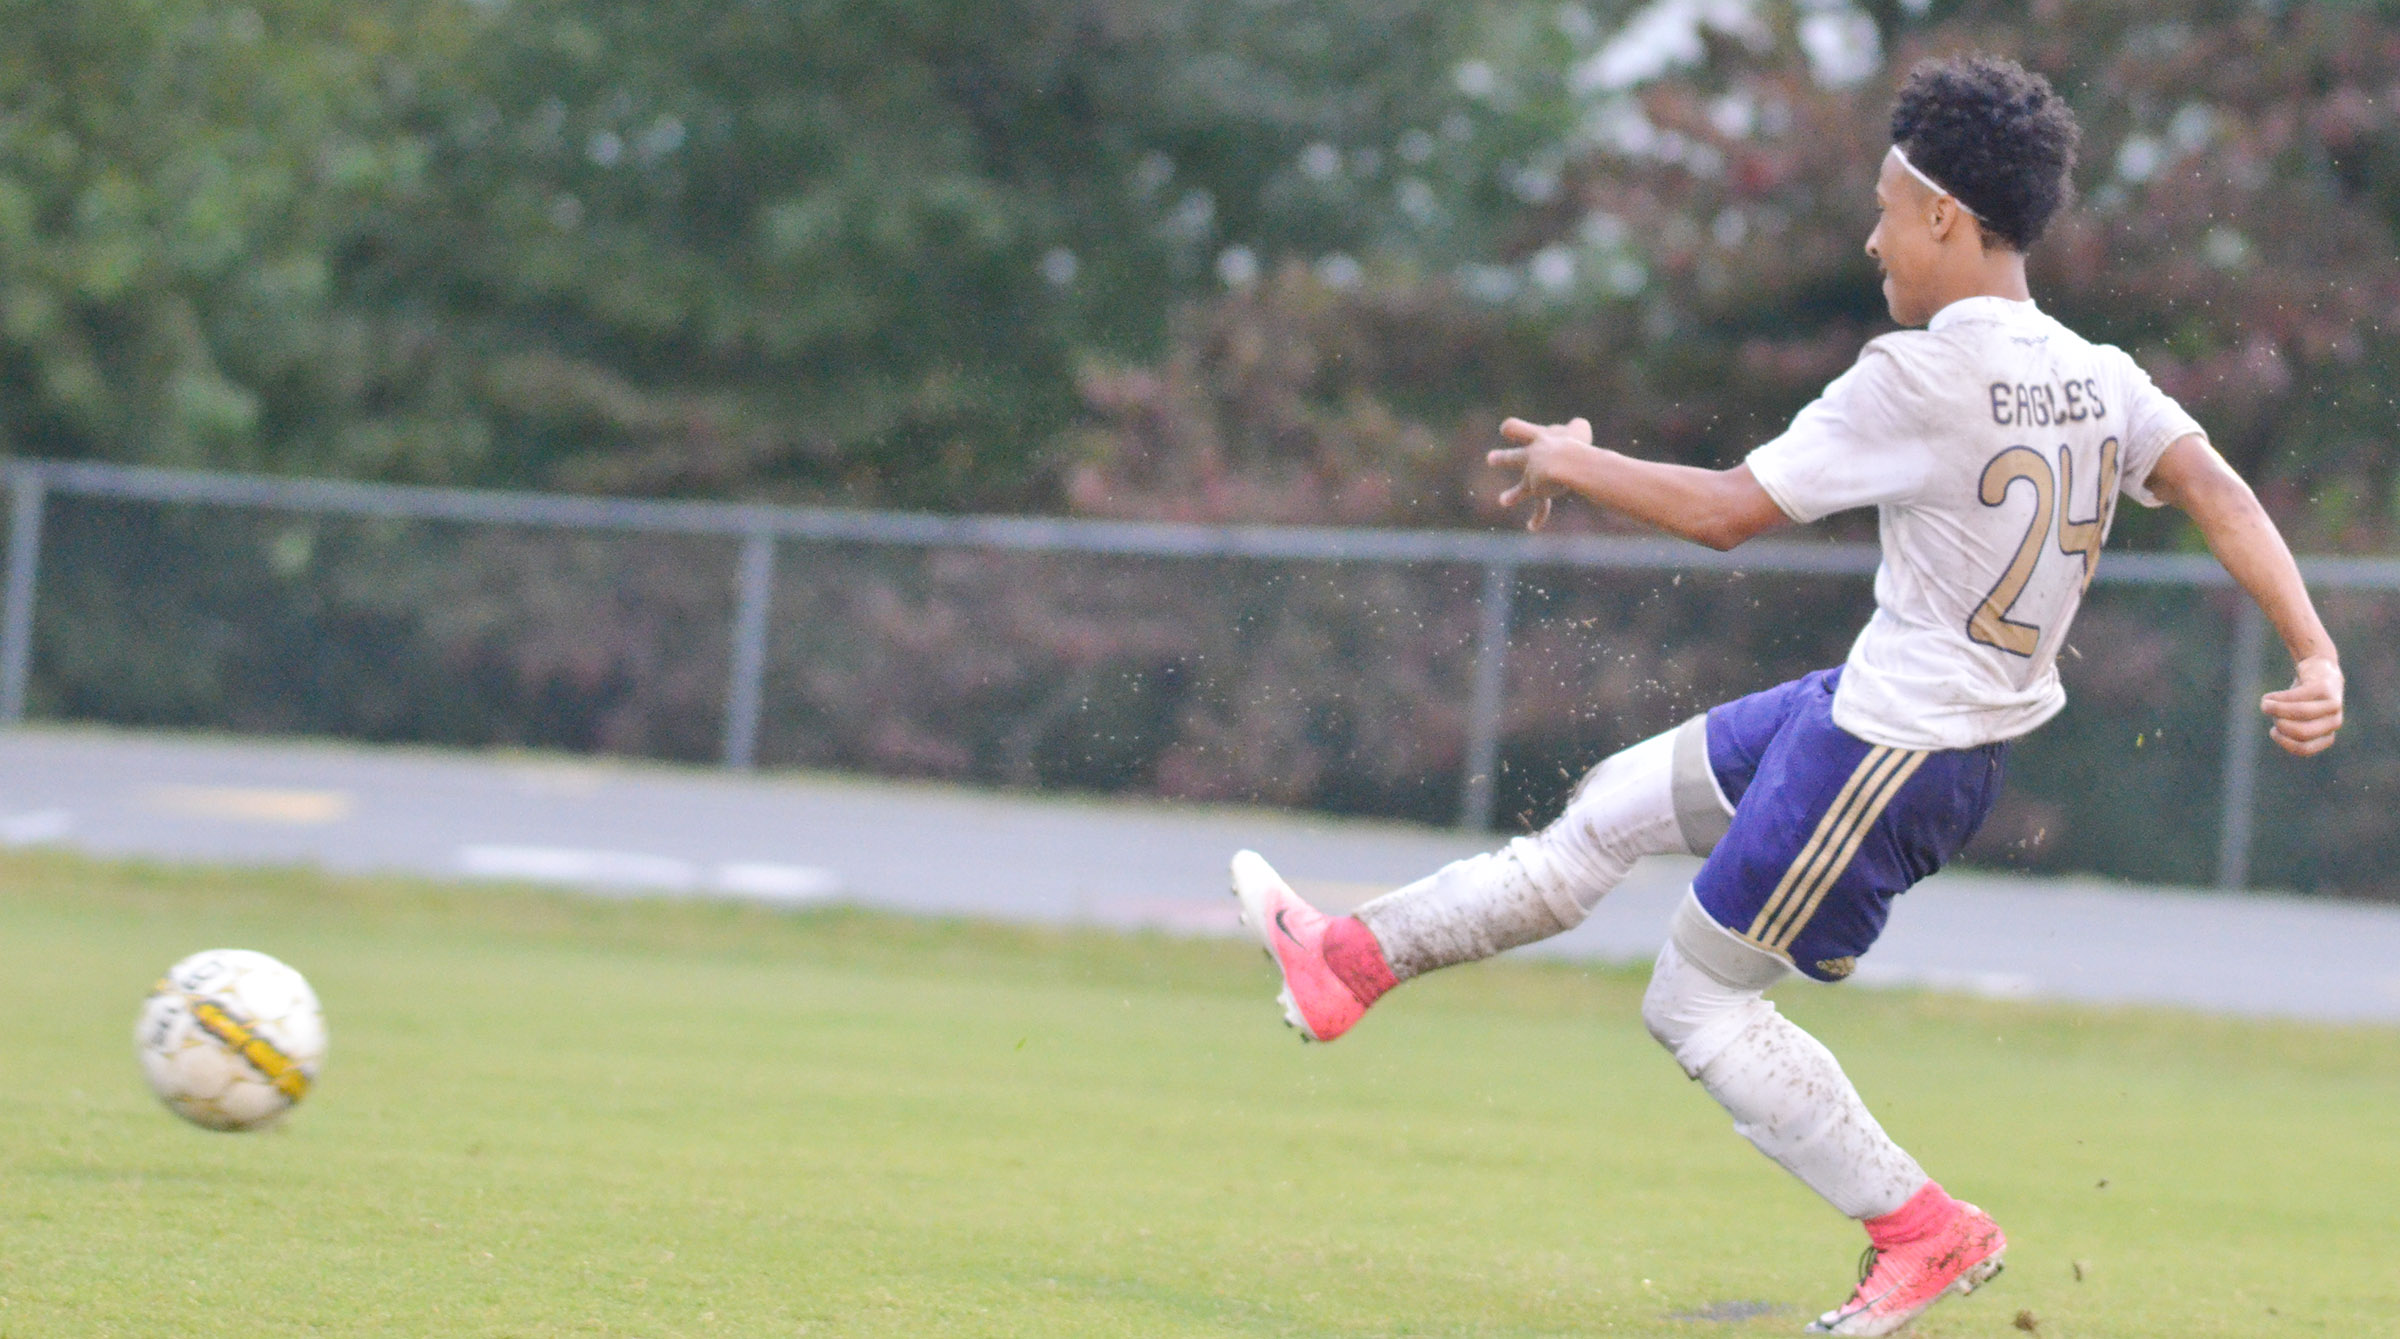 CHS junior Daniel Johnson scores a goal.